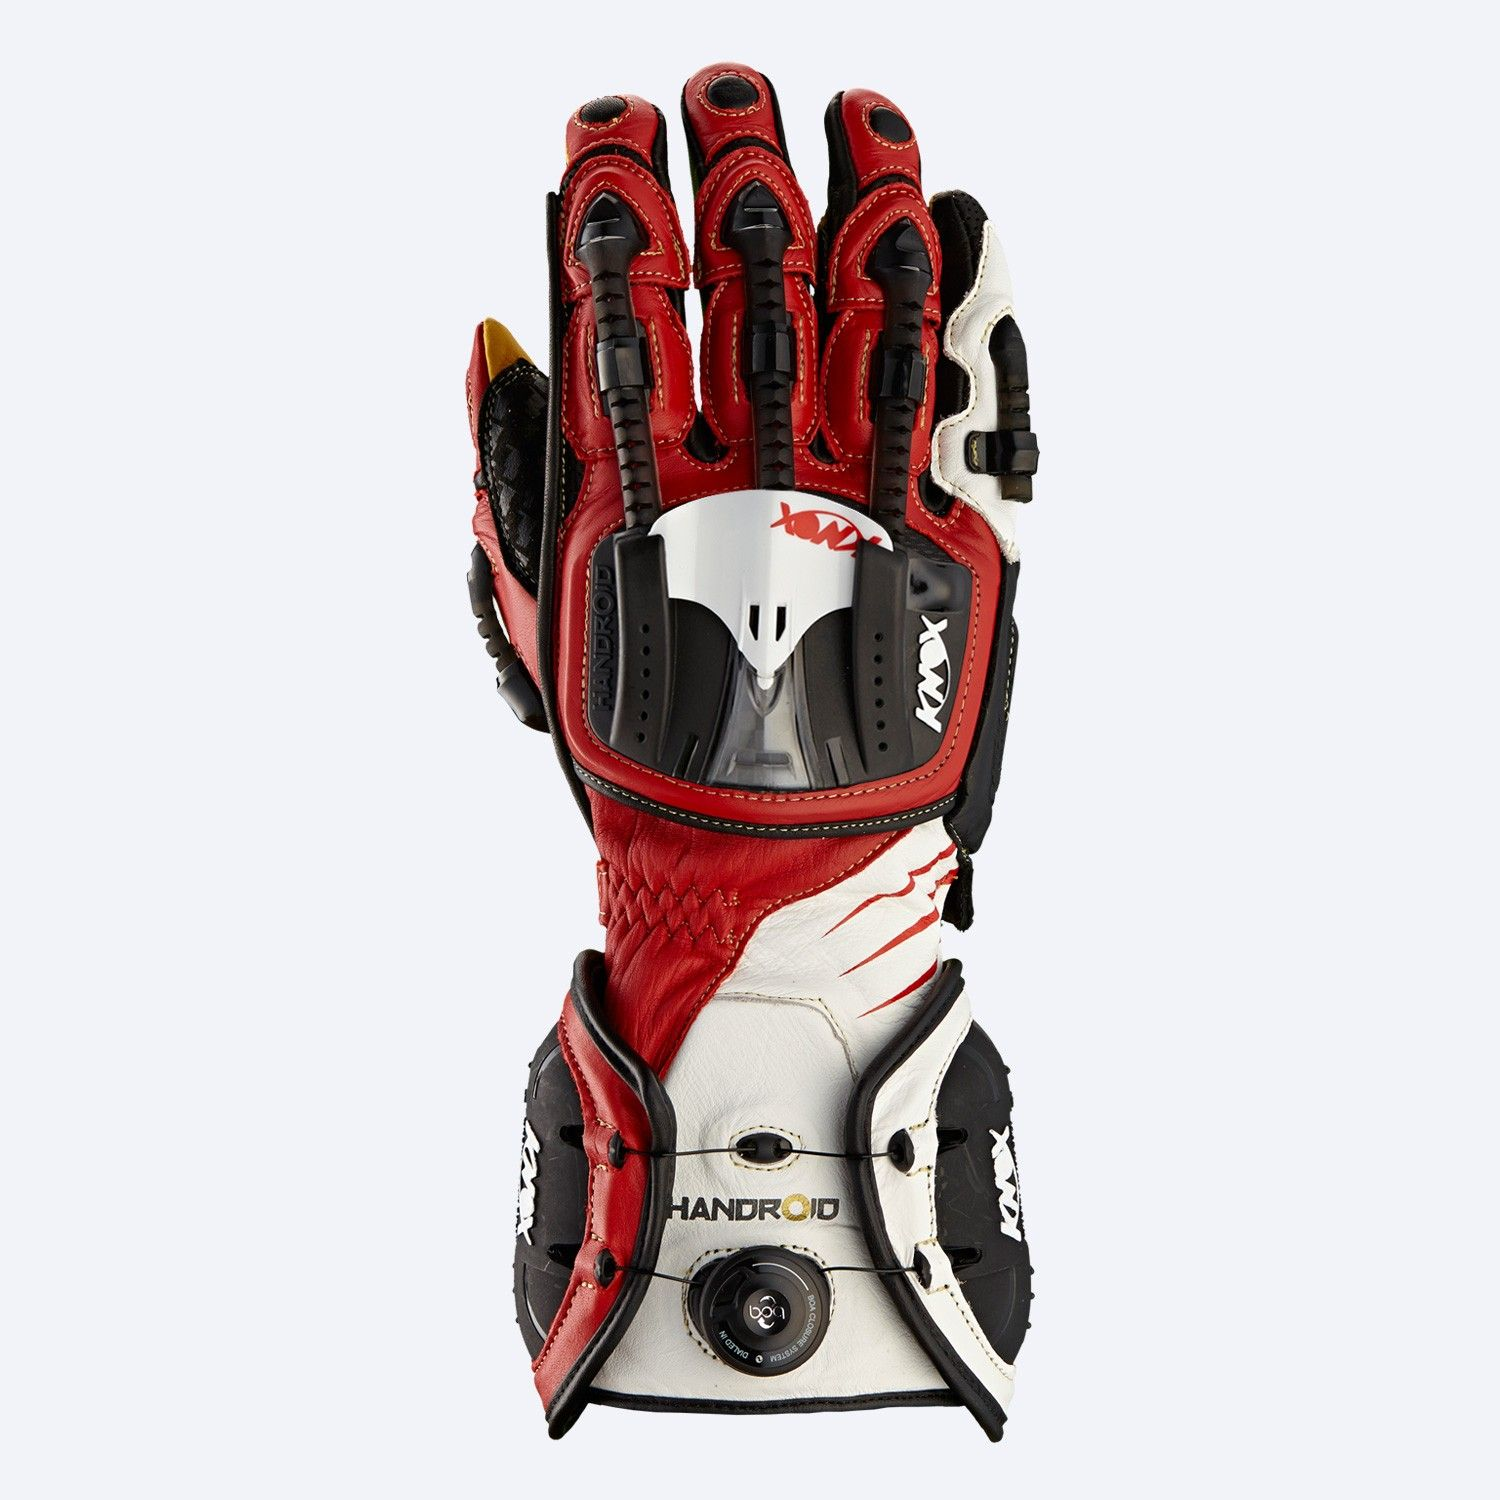 Motorcycle gloves kingston - Handroid The Best Motorcycle Gloves In The World